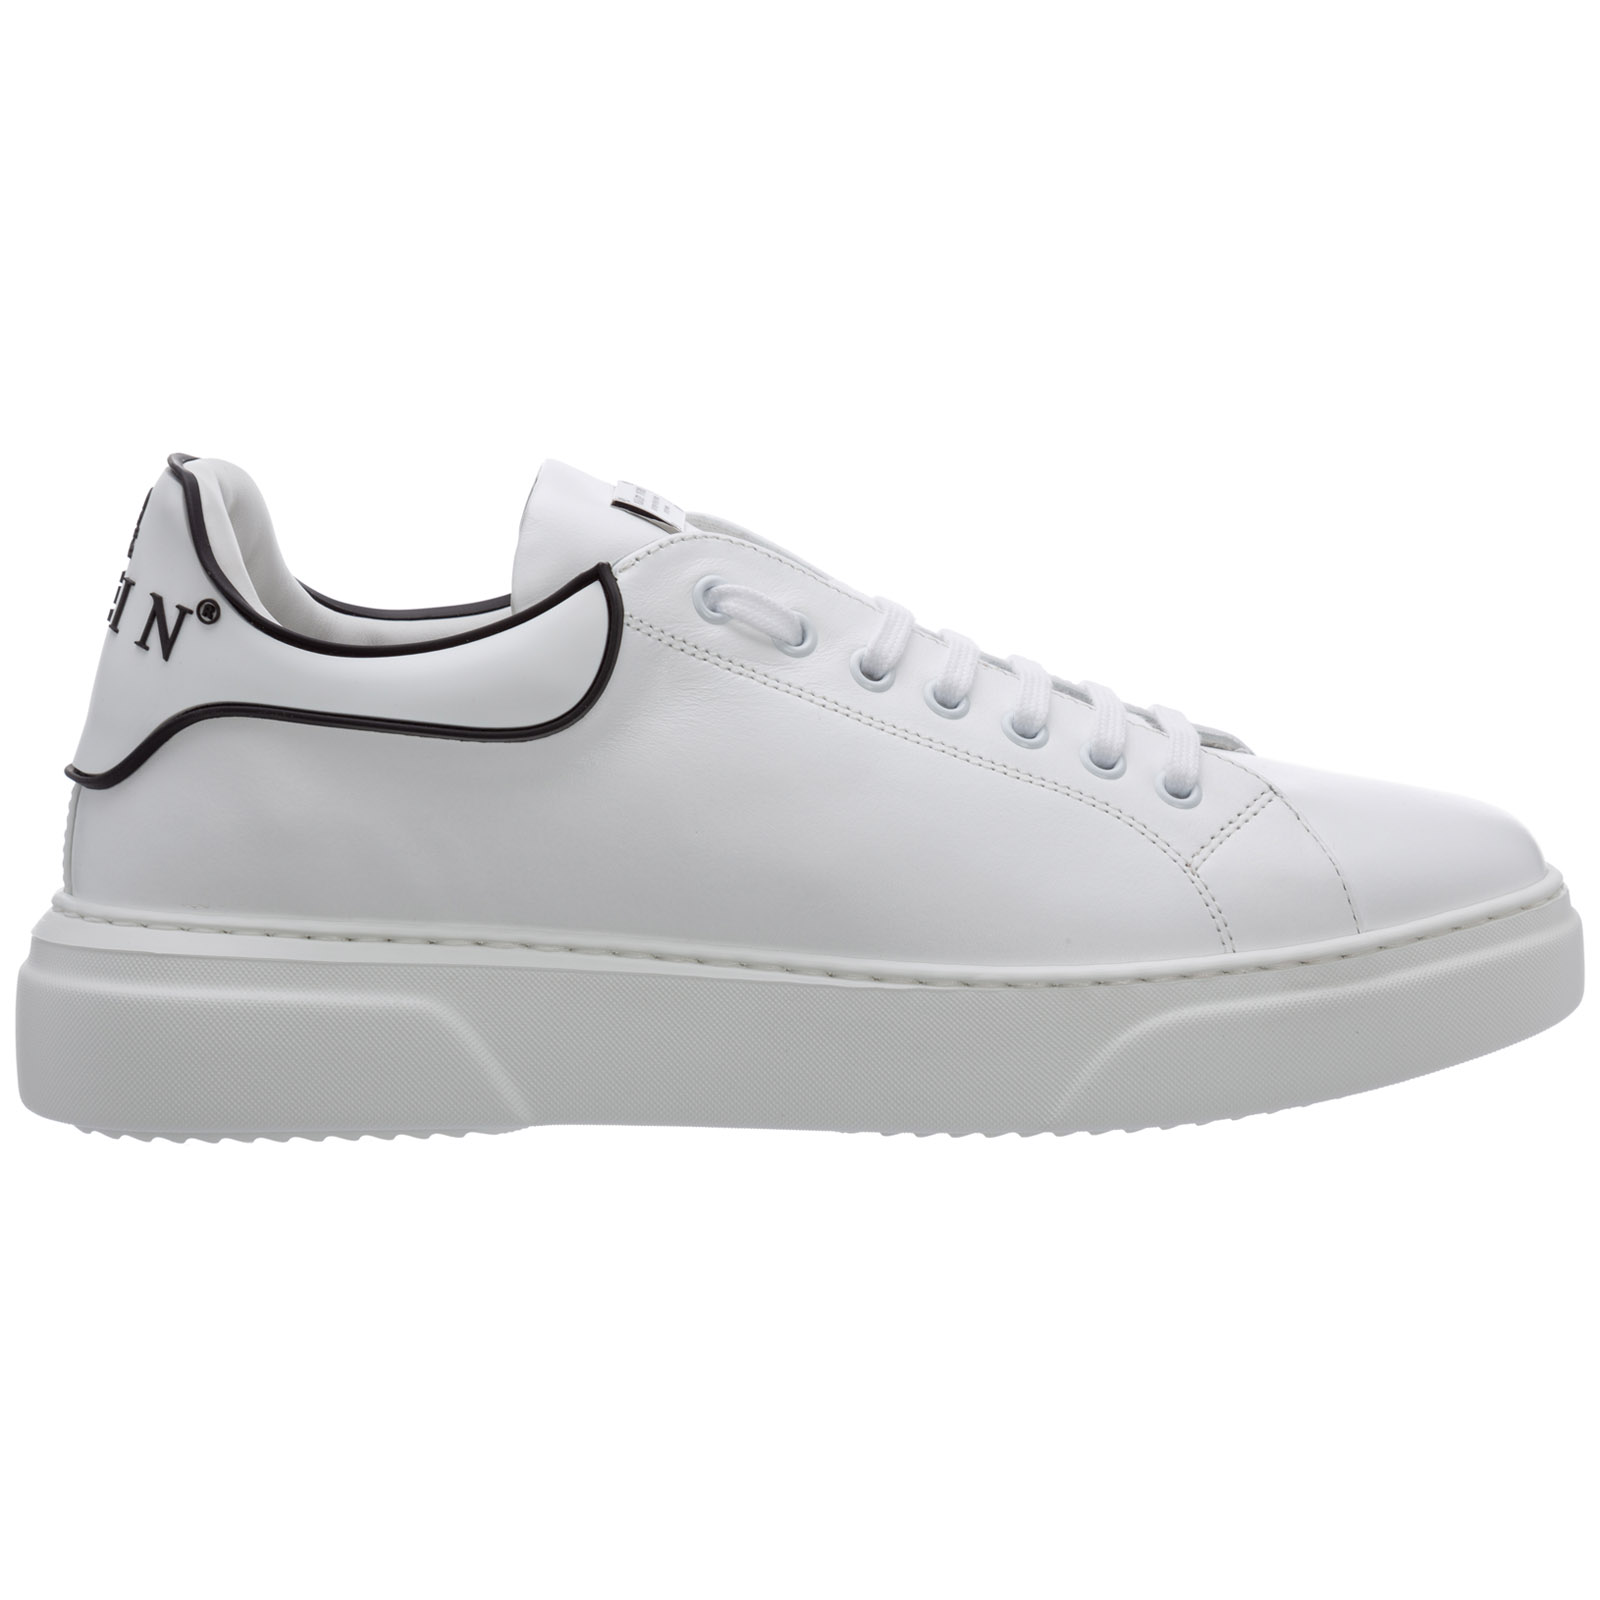 Philipp Plein MEN'S SHOES LEATHER TRAINERS SNEAKERS BIG BANG